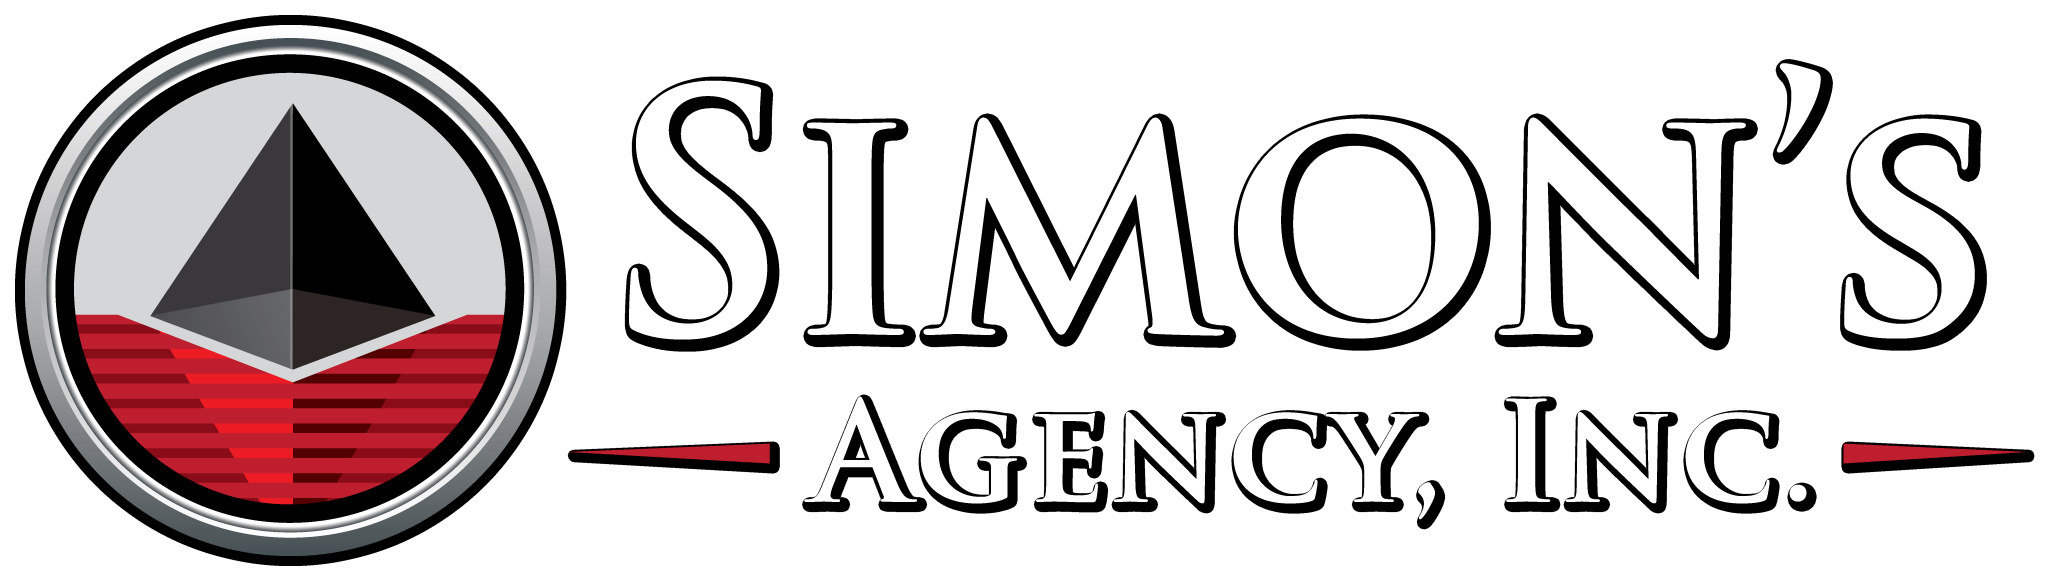 Simon's Agency, Inc.